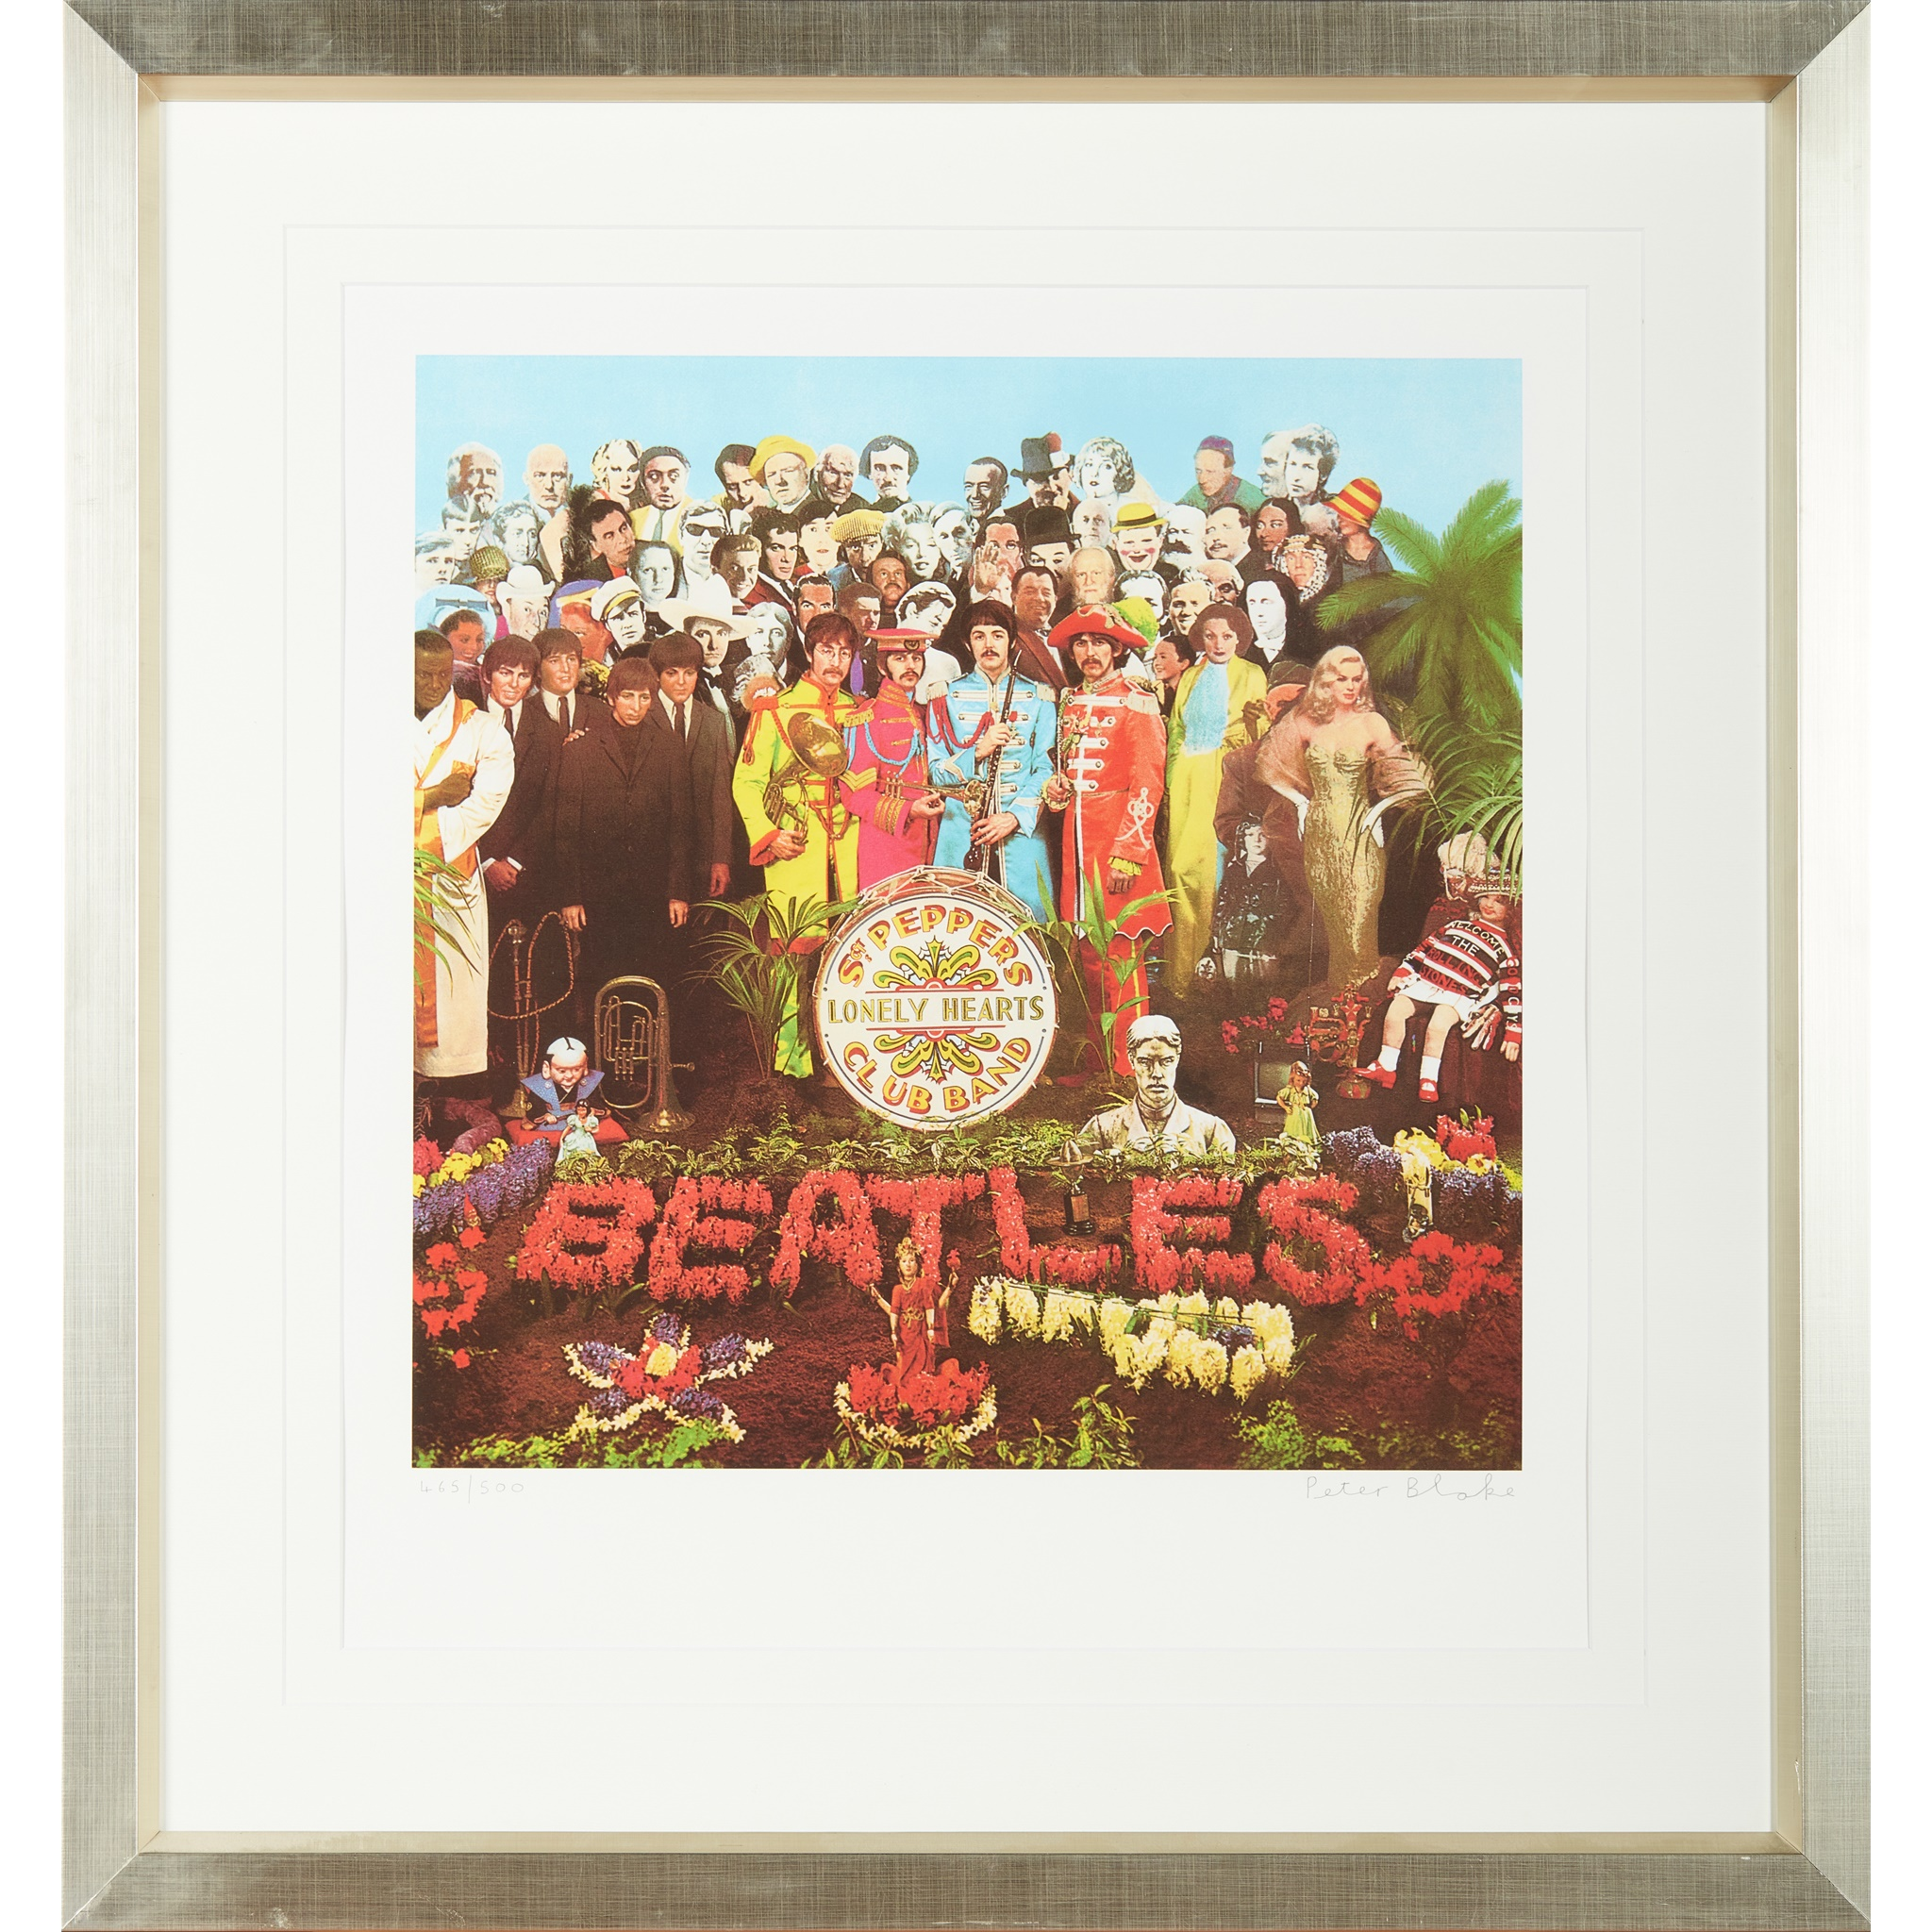 § SIR PETER BLAKE C.B.E., R.A. (BRITISH 1932-) SERGEANT PEPPER'S LONELY HEARTS CLUB BAND - 2007 - Image 2 of 3